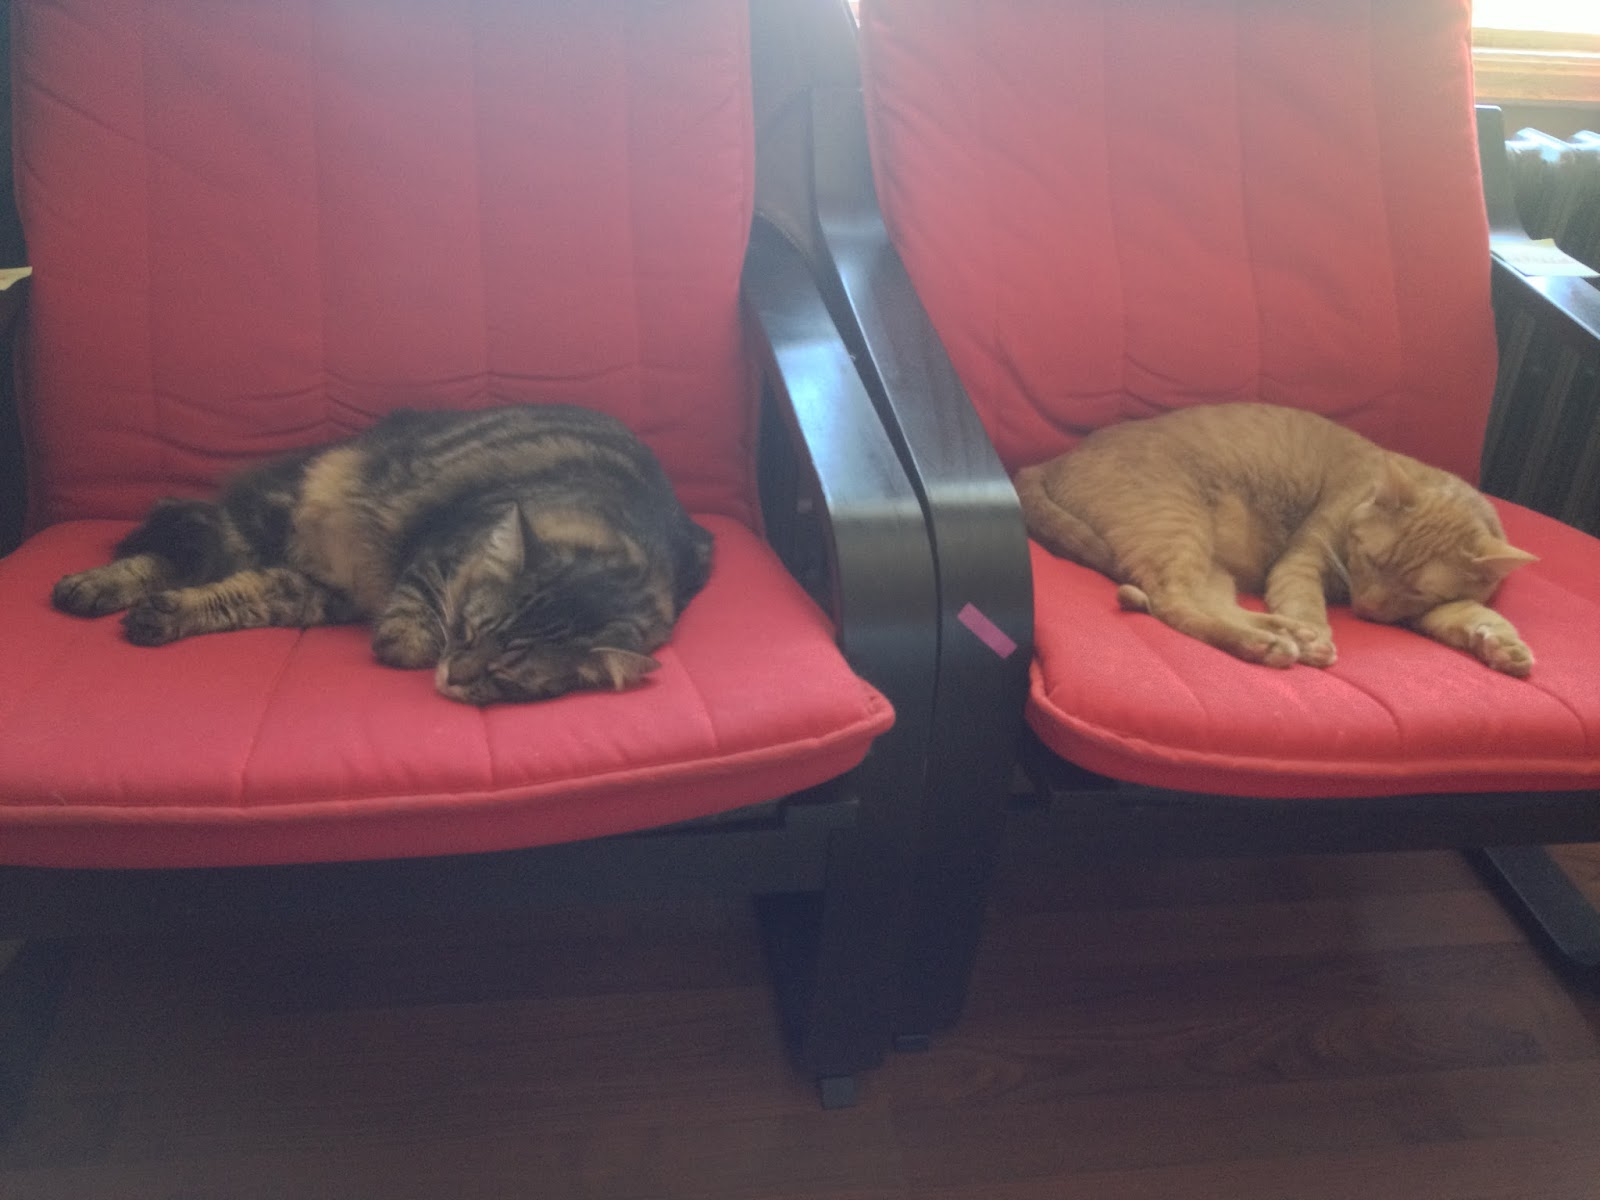 image of cats sleeping on chairs